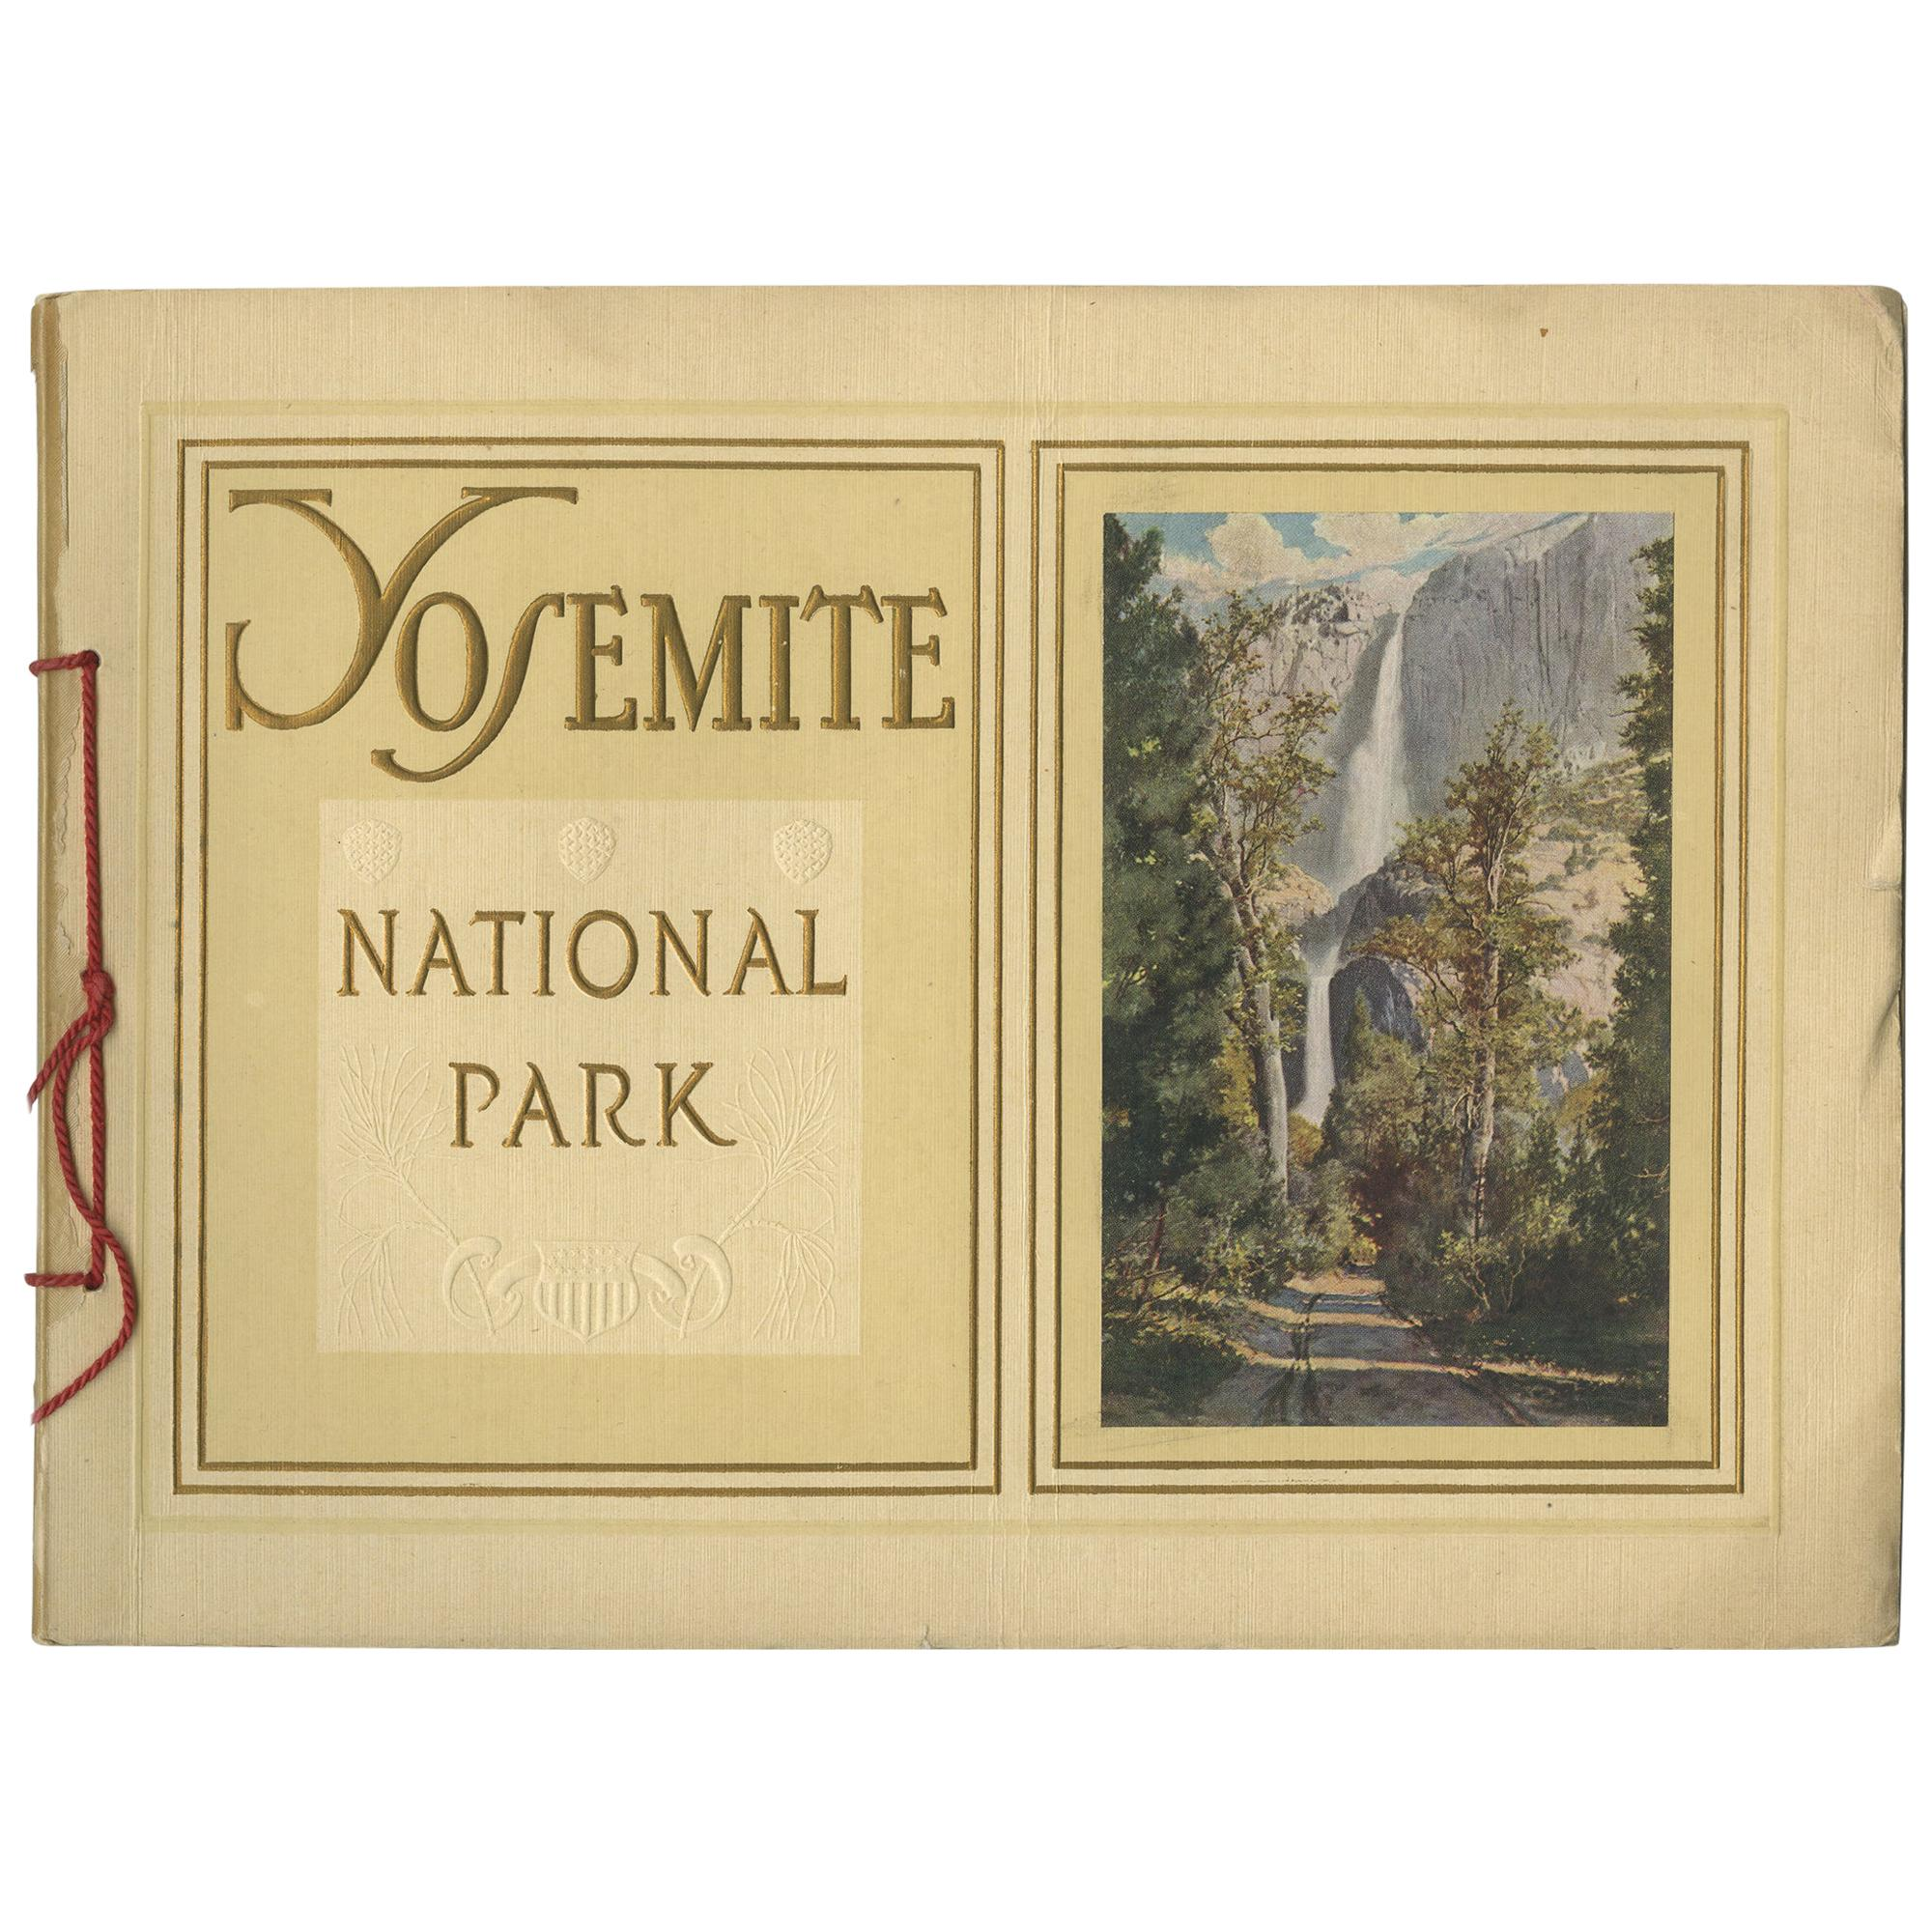 Antique Booklet 'Yosemite National Park' by O.W. Lehmer, 1912